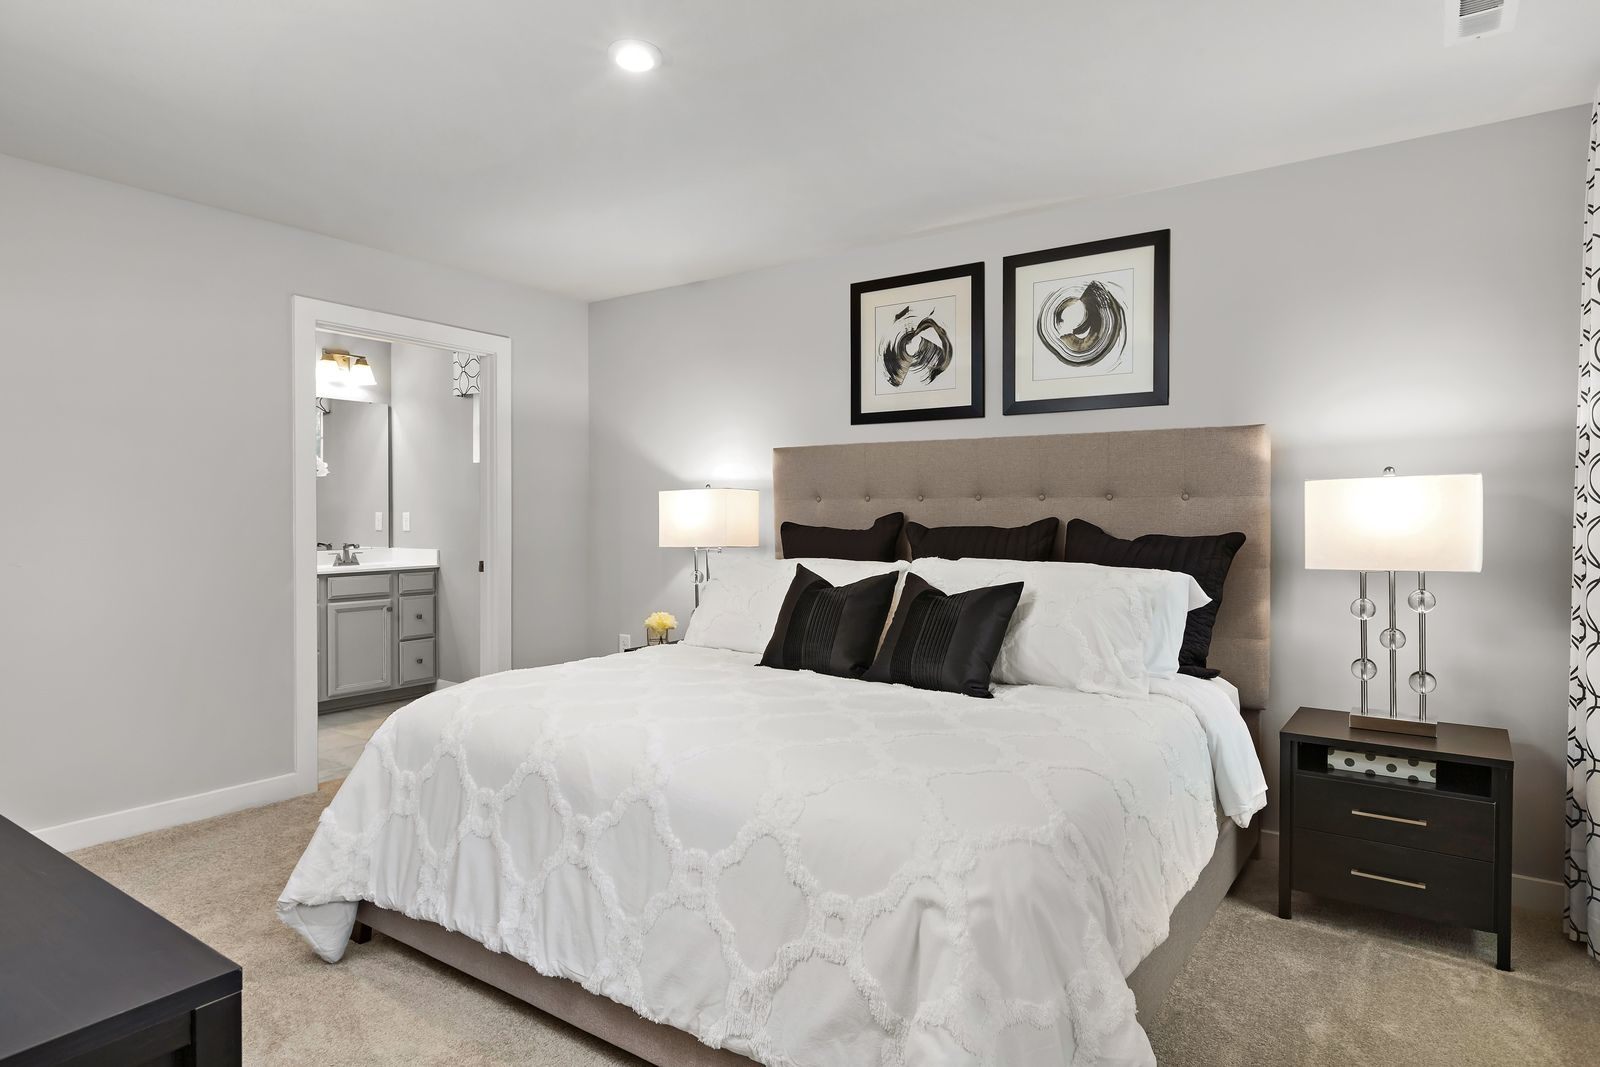 Bedroom featured in the Grand Cayman By Ryan Homes in Dover, DE